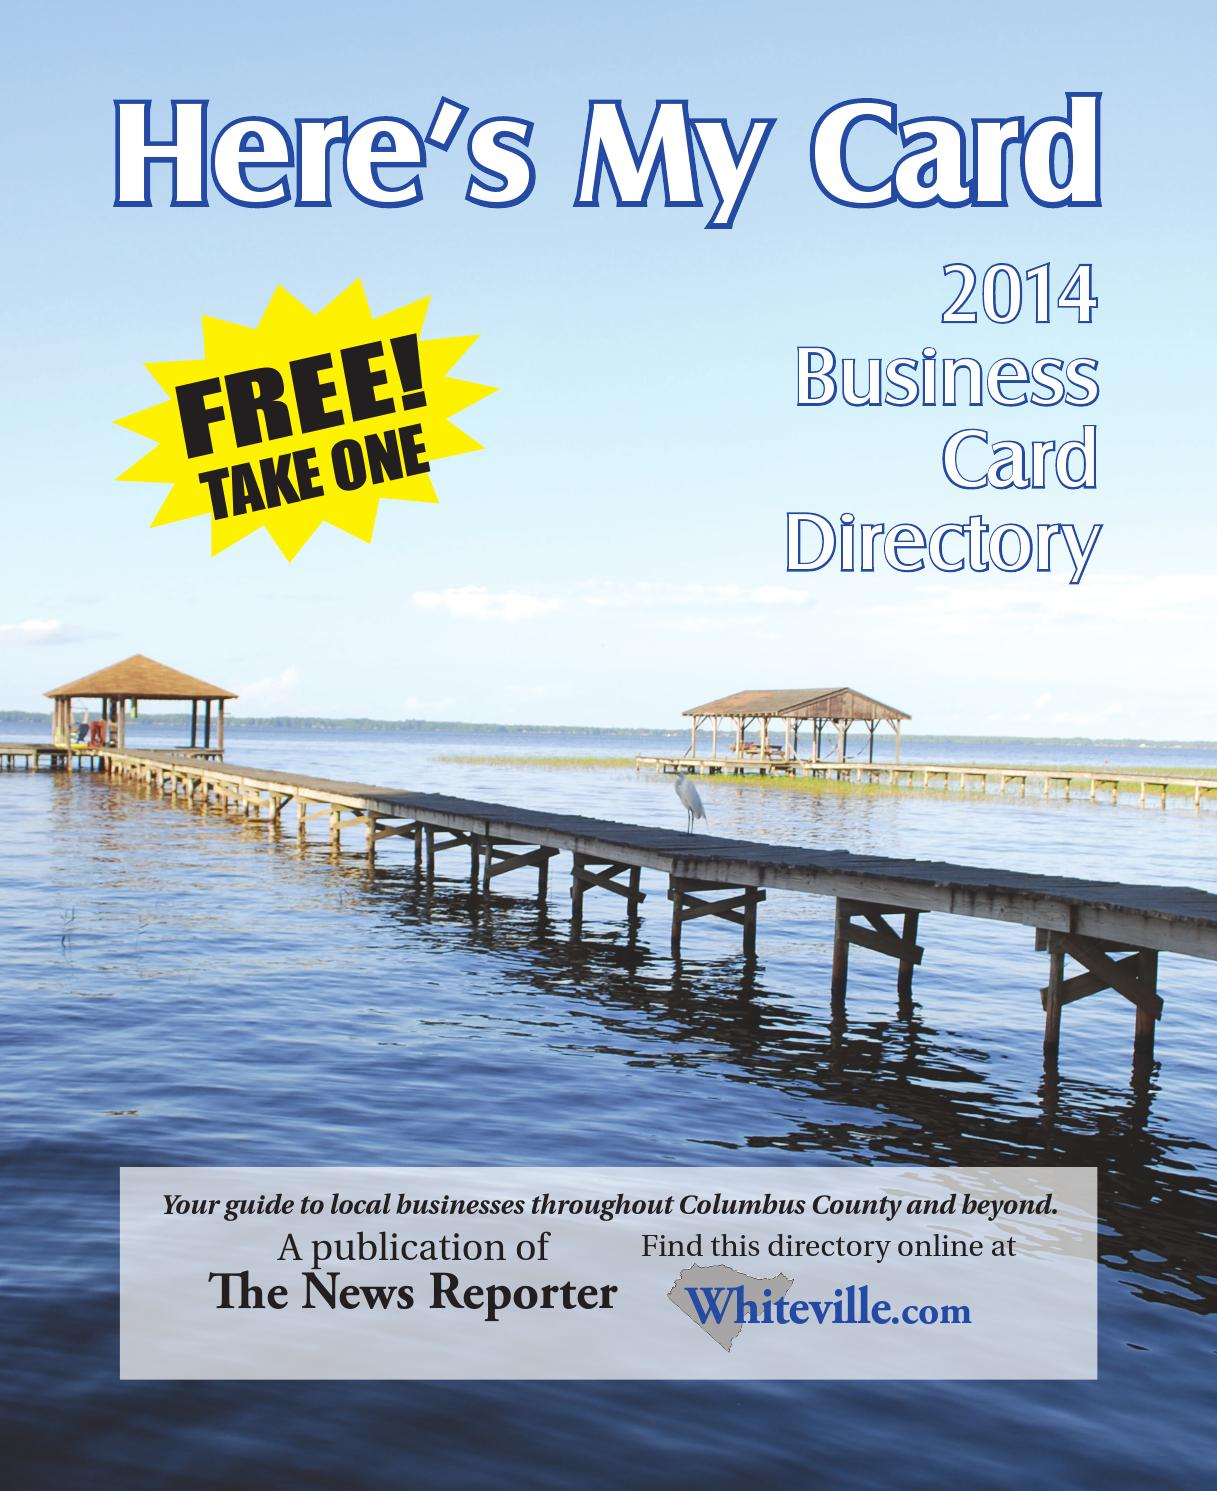 Business Card Directory 2014 by The News Reporter - issuu